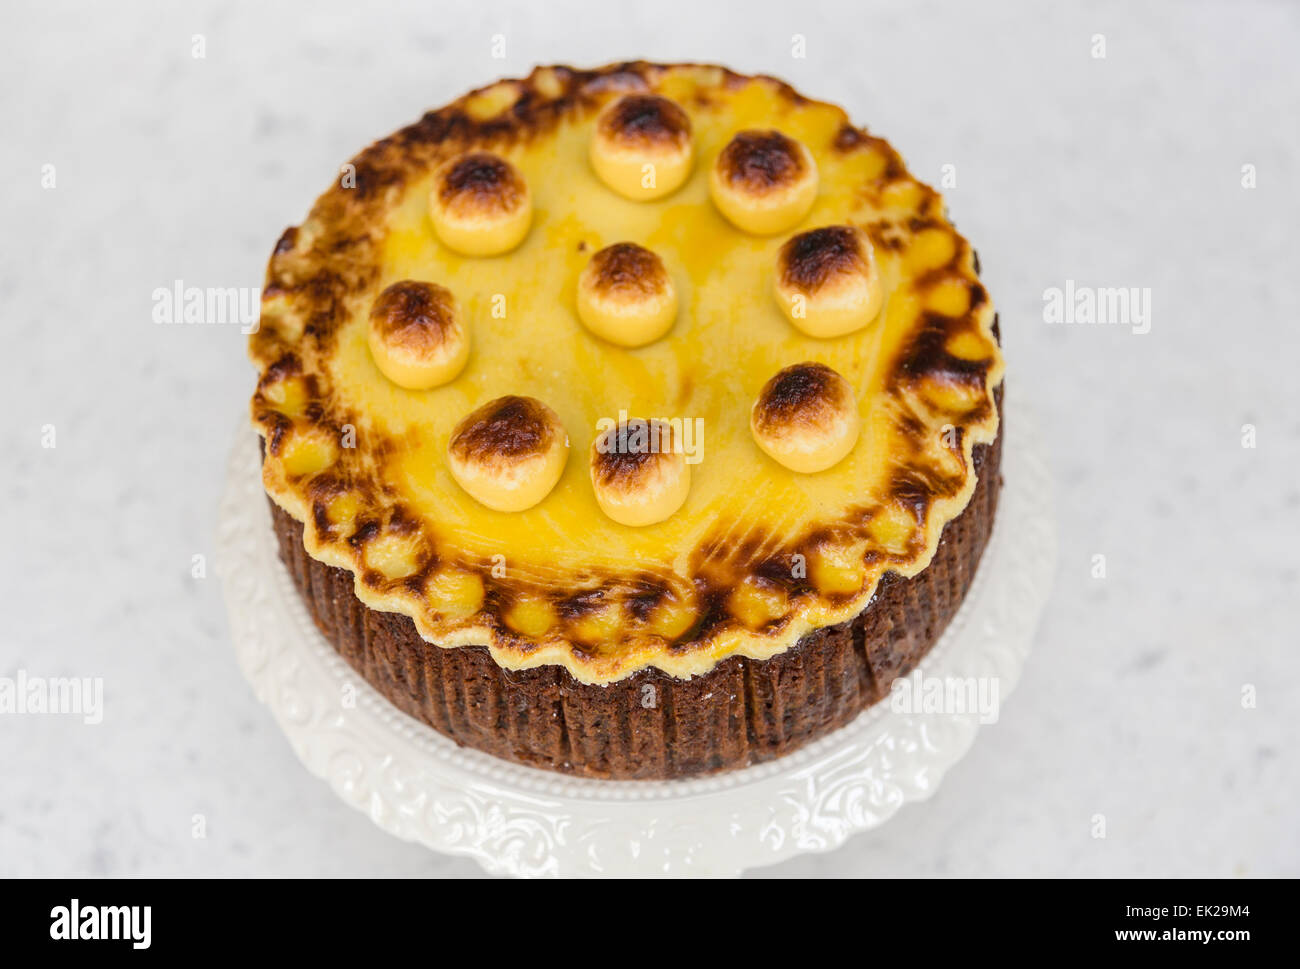 Traditional home baked simnel cake on a white china cake stand for Easter - fruit cake with toasted marzipan topping - Stock Image